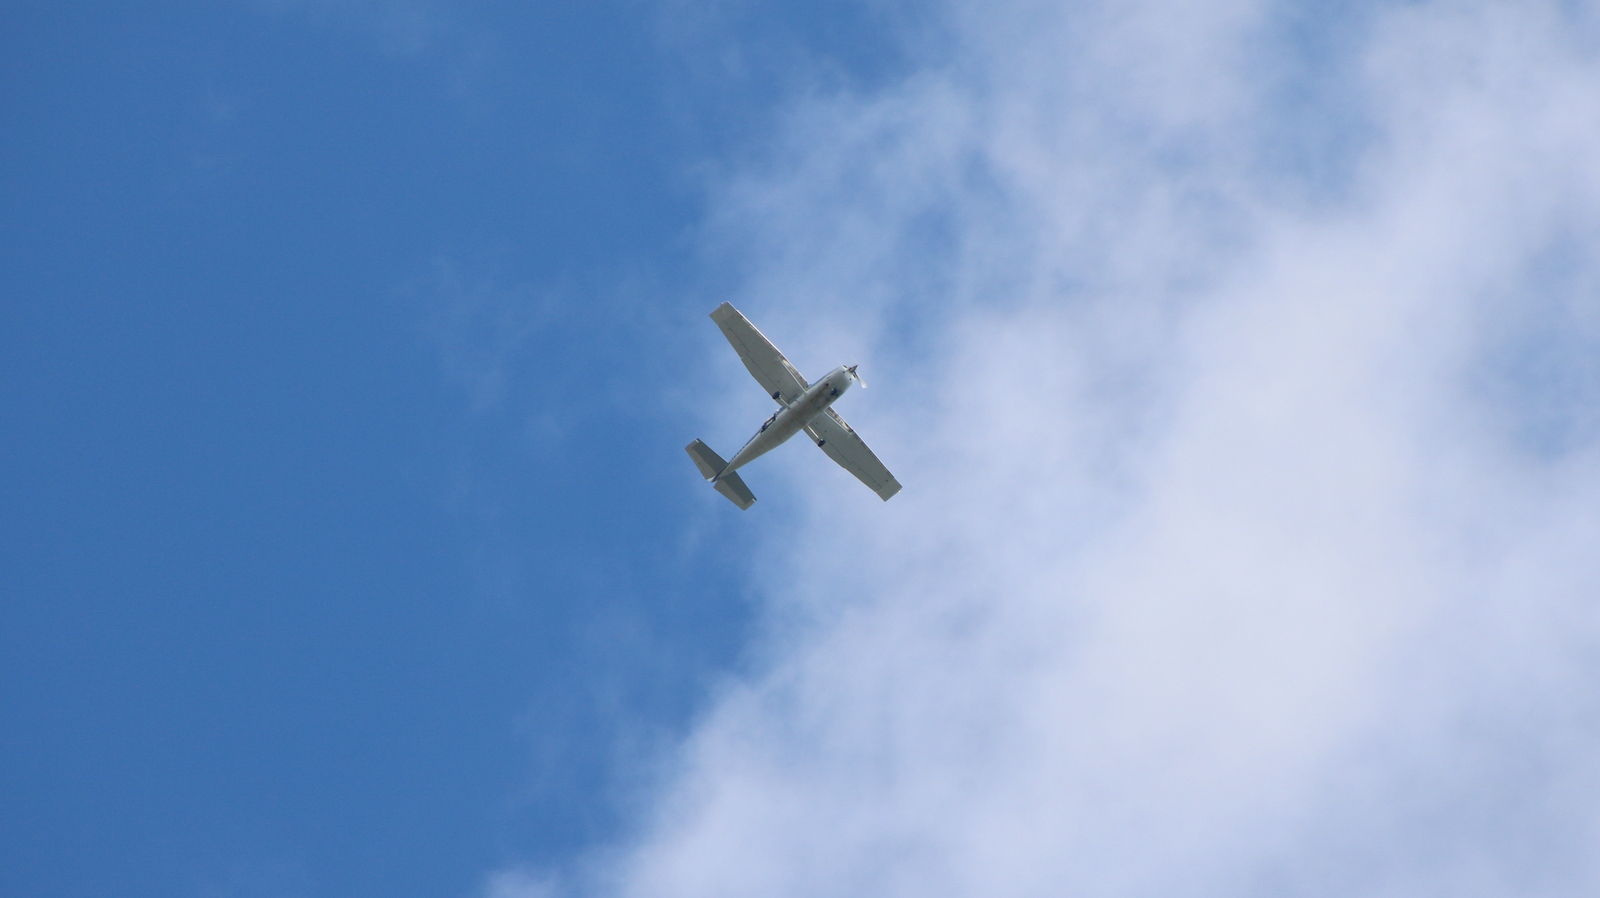 The Baltimore police department's aerial surveillance plane has become a familiar sight and, many say, an annoying, persistent sound. (Louis Krauss)